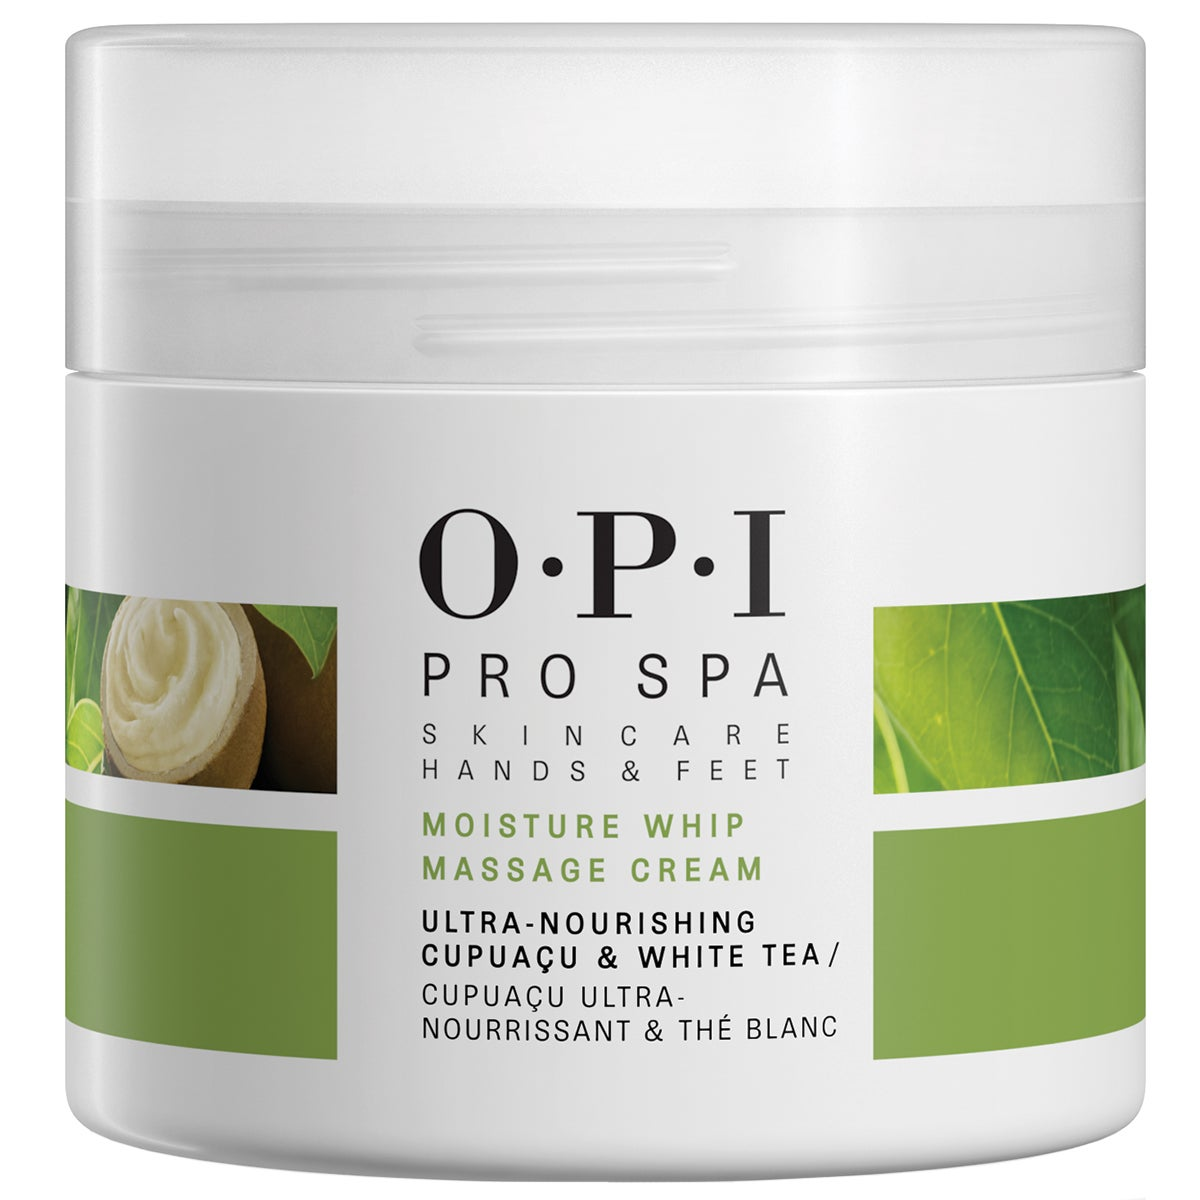 Pro Spa Moisture Whip Massage Creme 236 ml OPI Massage